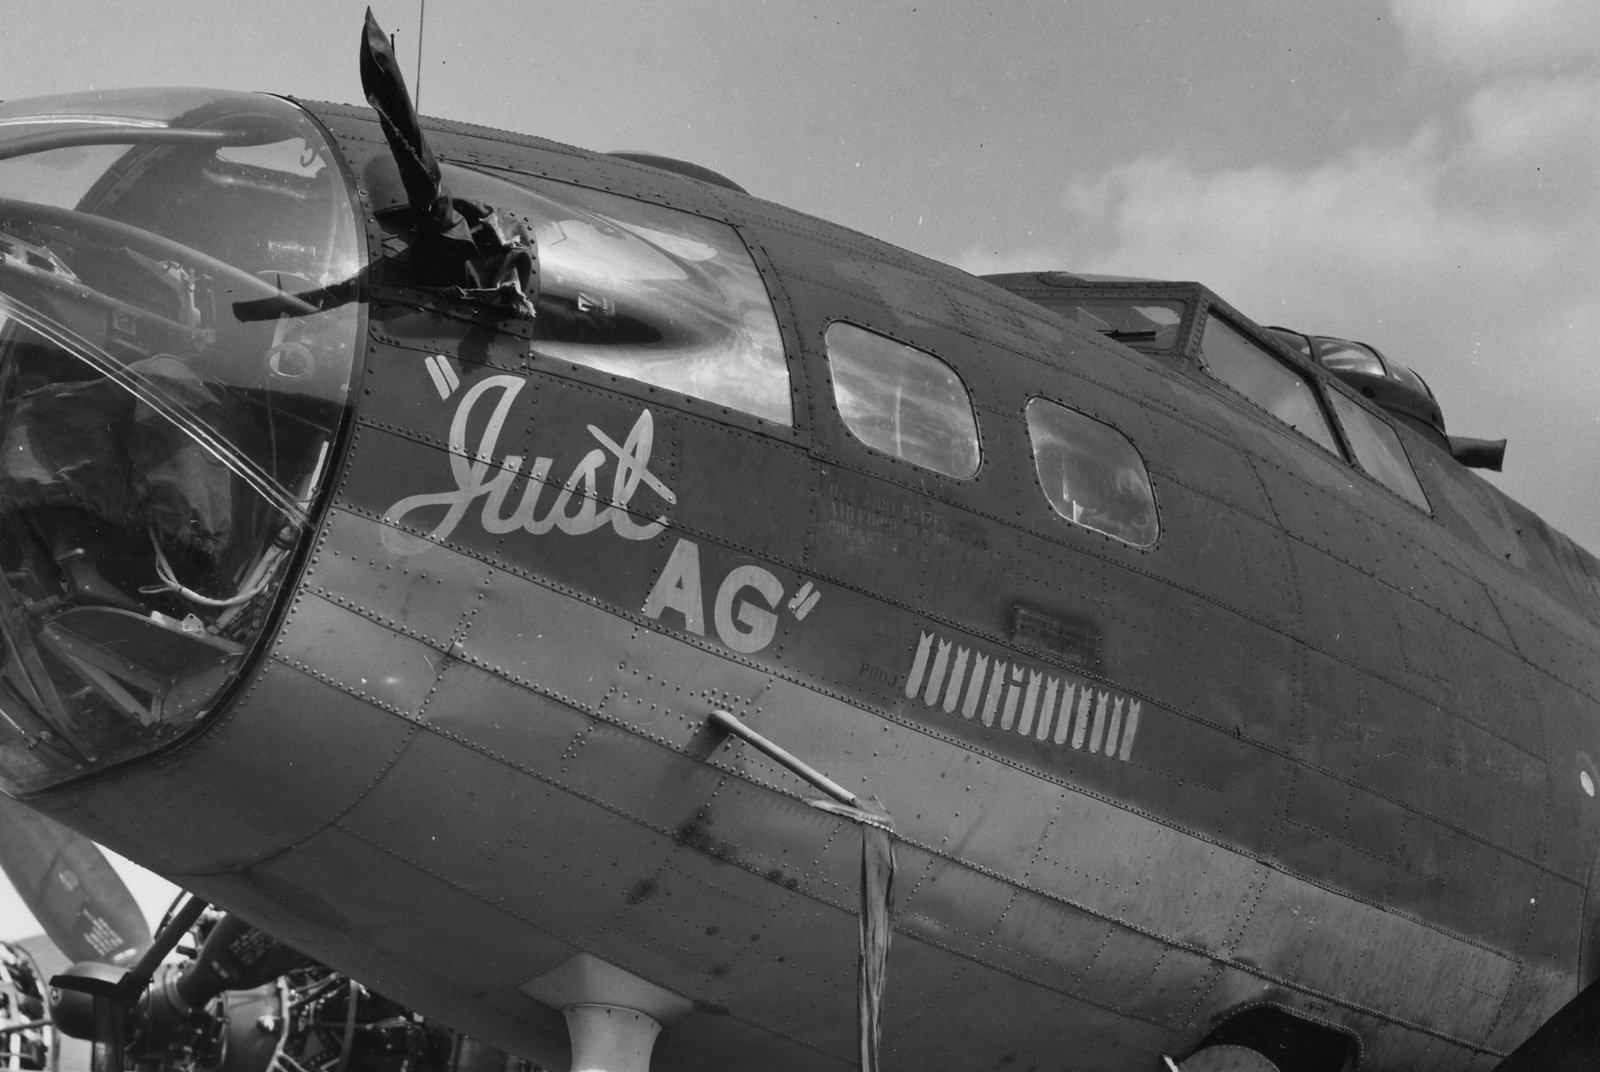 B-17 Flying Fortress 388th Bomb Group Just AG